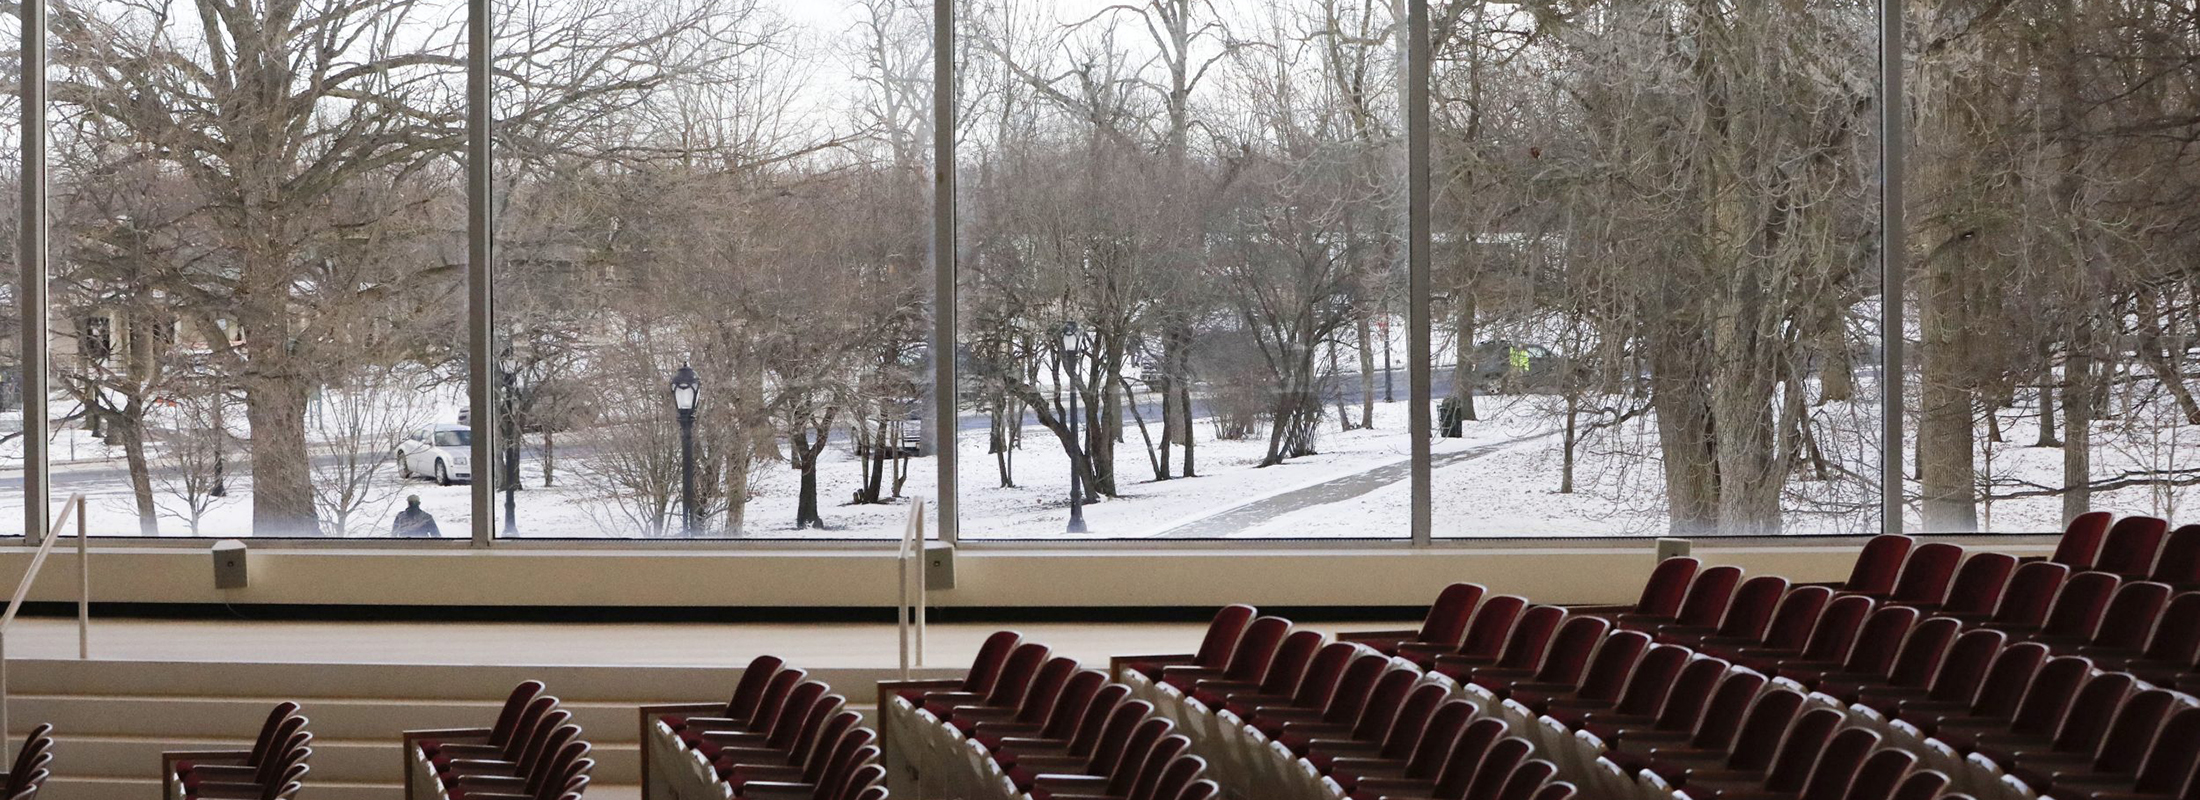 A Delaware Park snowscape can be seen through the huge windows of the Albright-Knox Art Gallery auditorium on Friday, Jan. 11, 2019. (Derek Gee/Buffalo News)